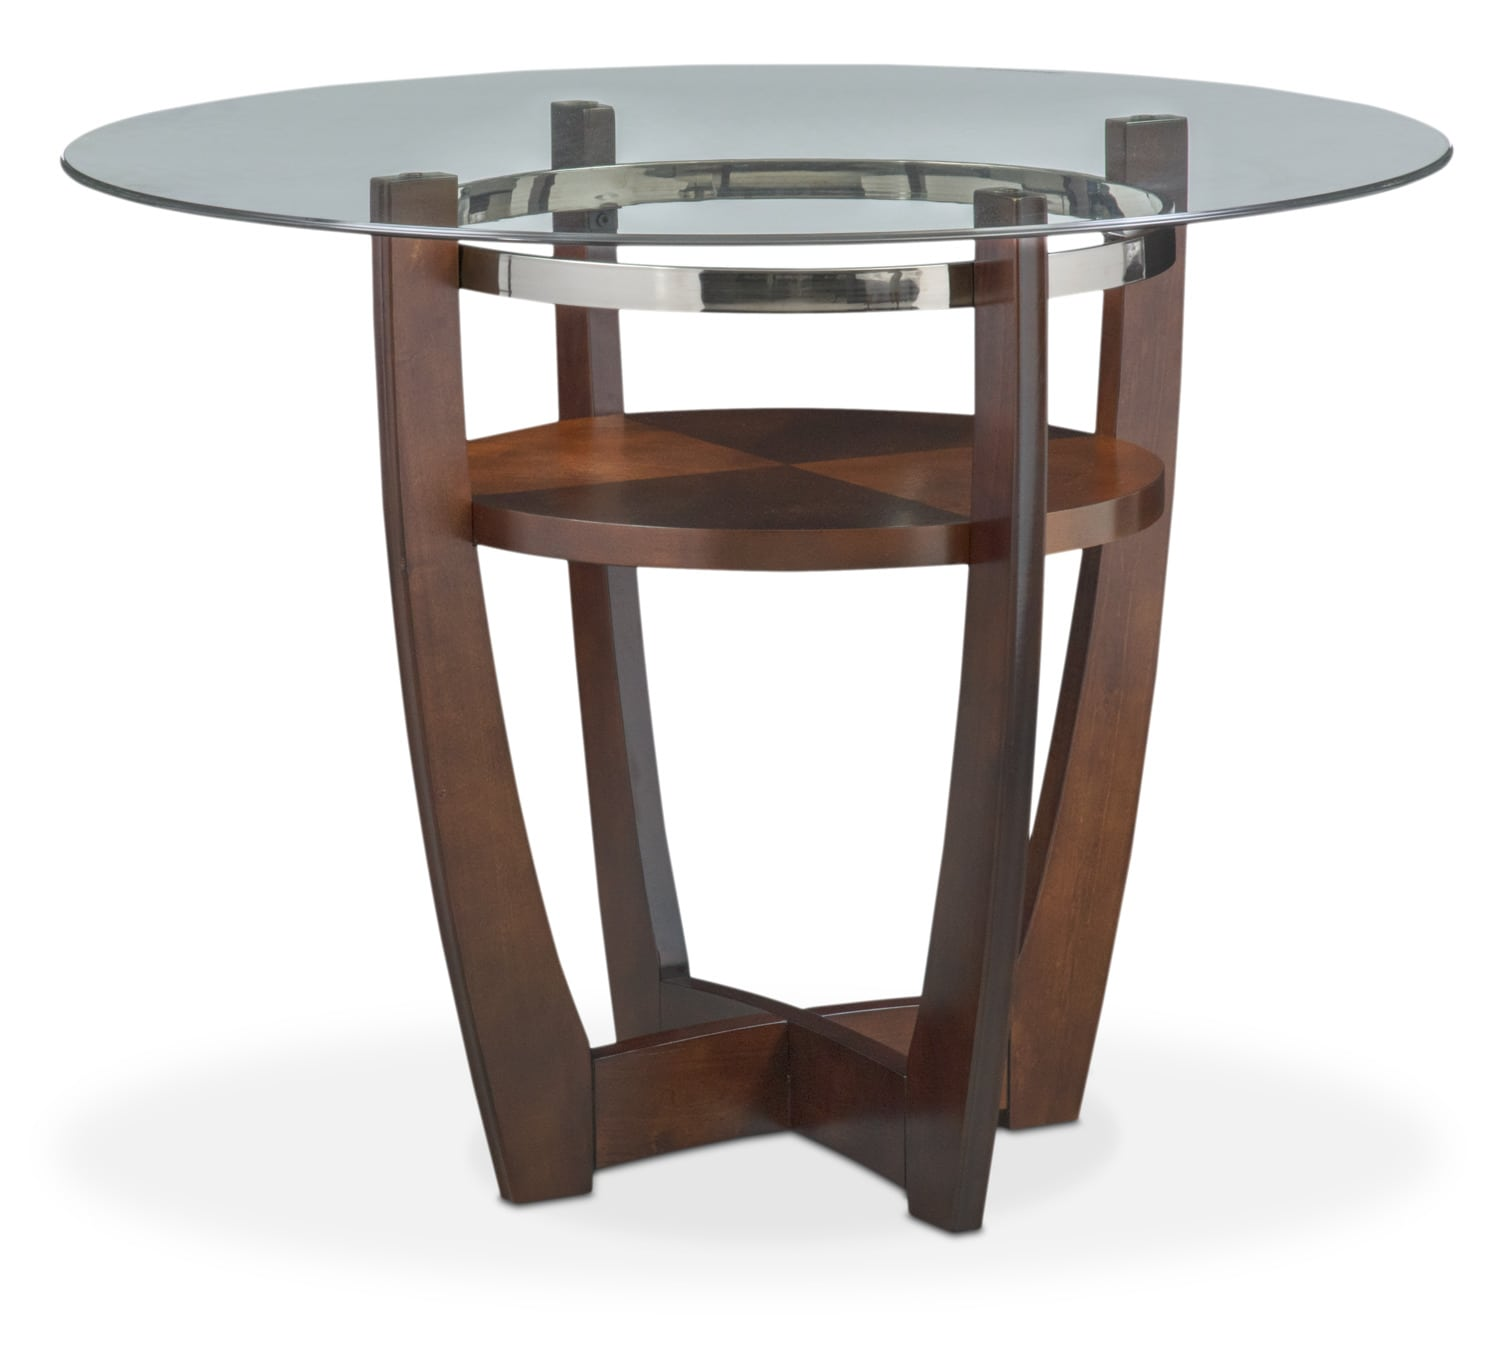 dining room counter height tables | Alcove Counter-Height Table - Merlot | Value City Furniture